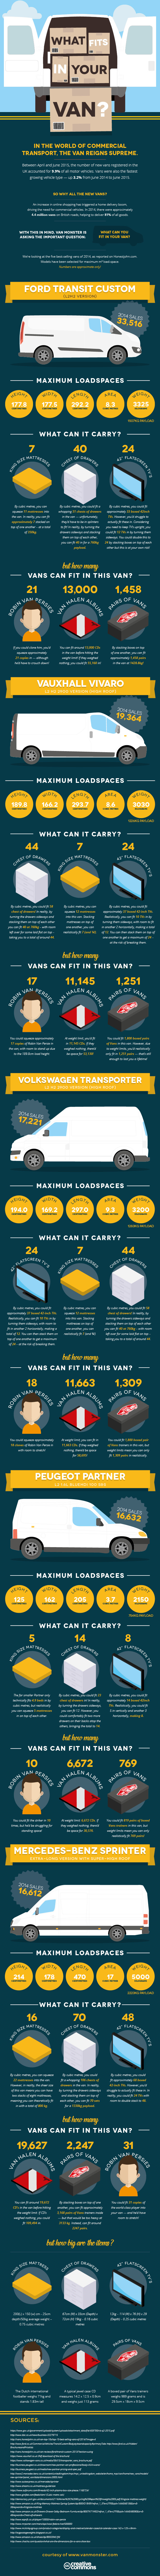 INFOGRAPHIC: What Fits In Your Van?